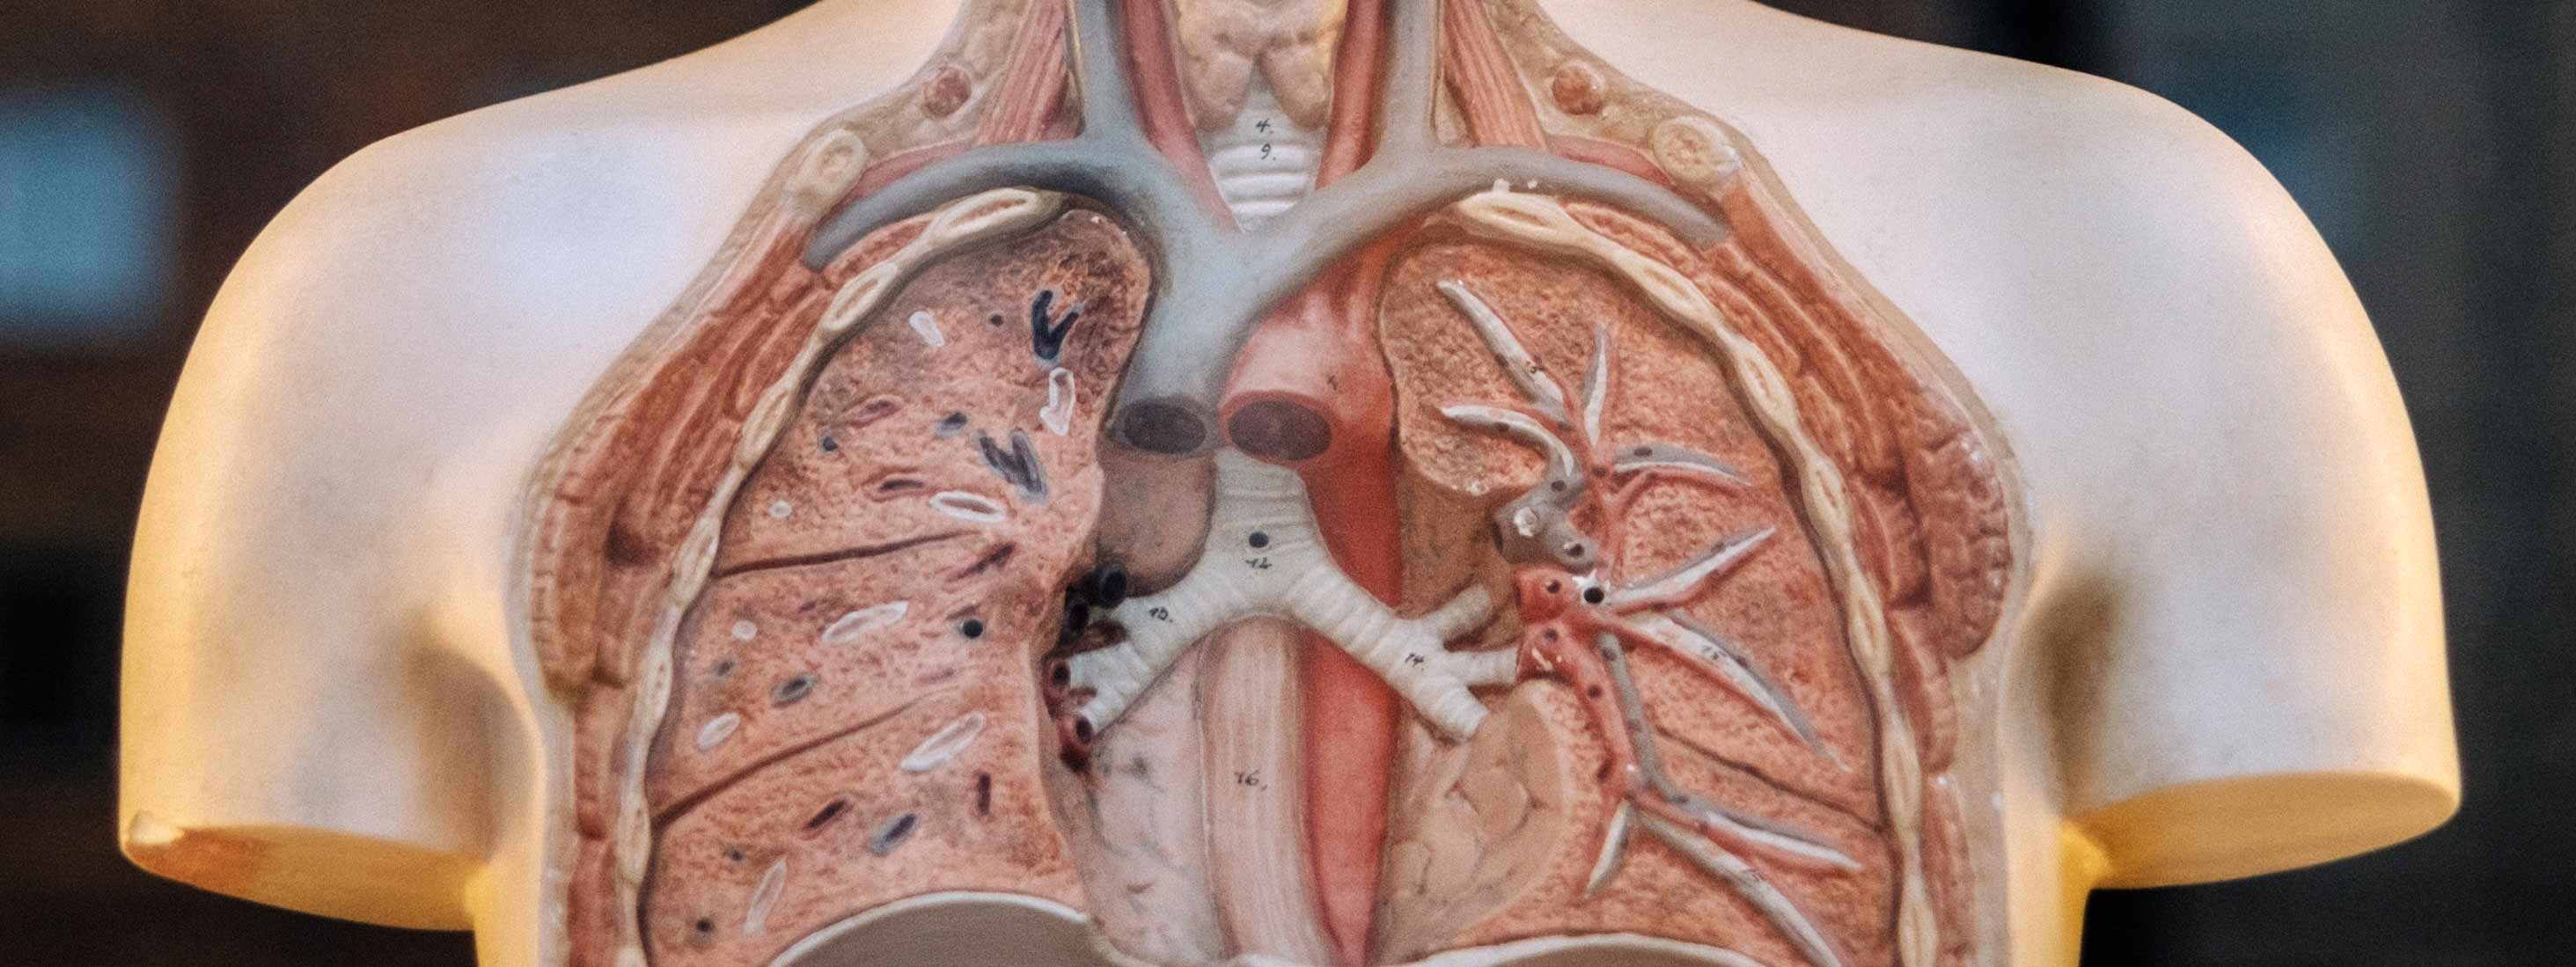 Lungs inside a plastic mannequin